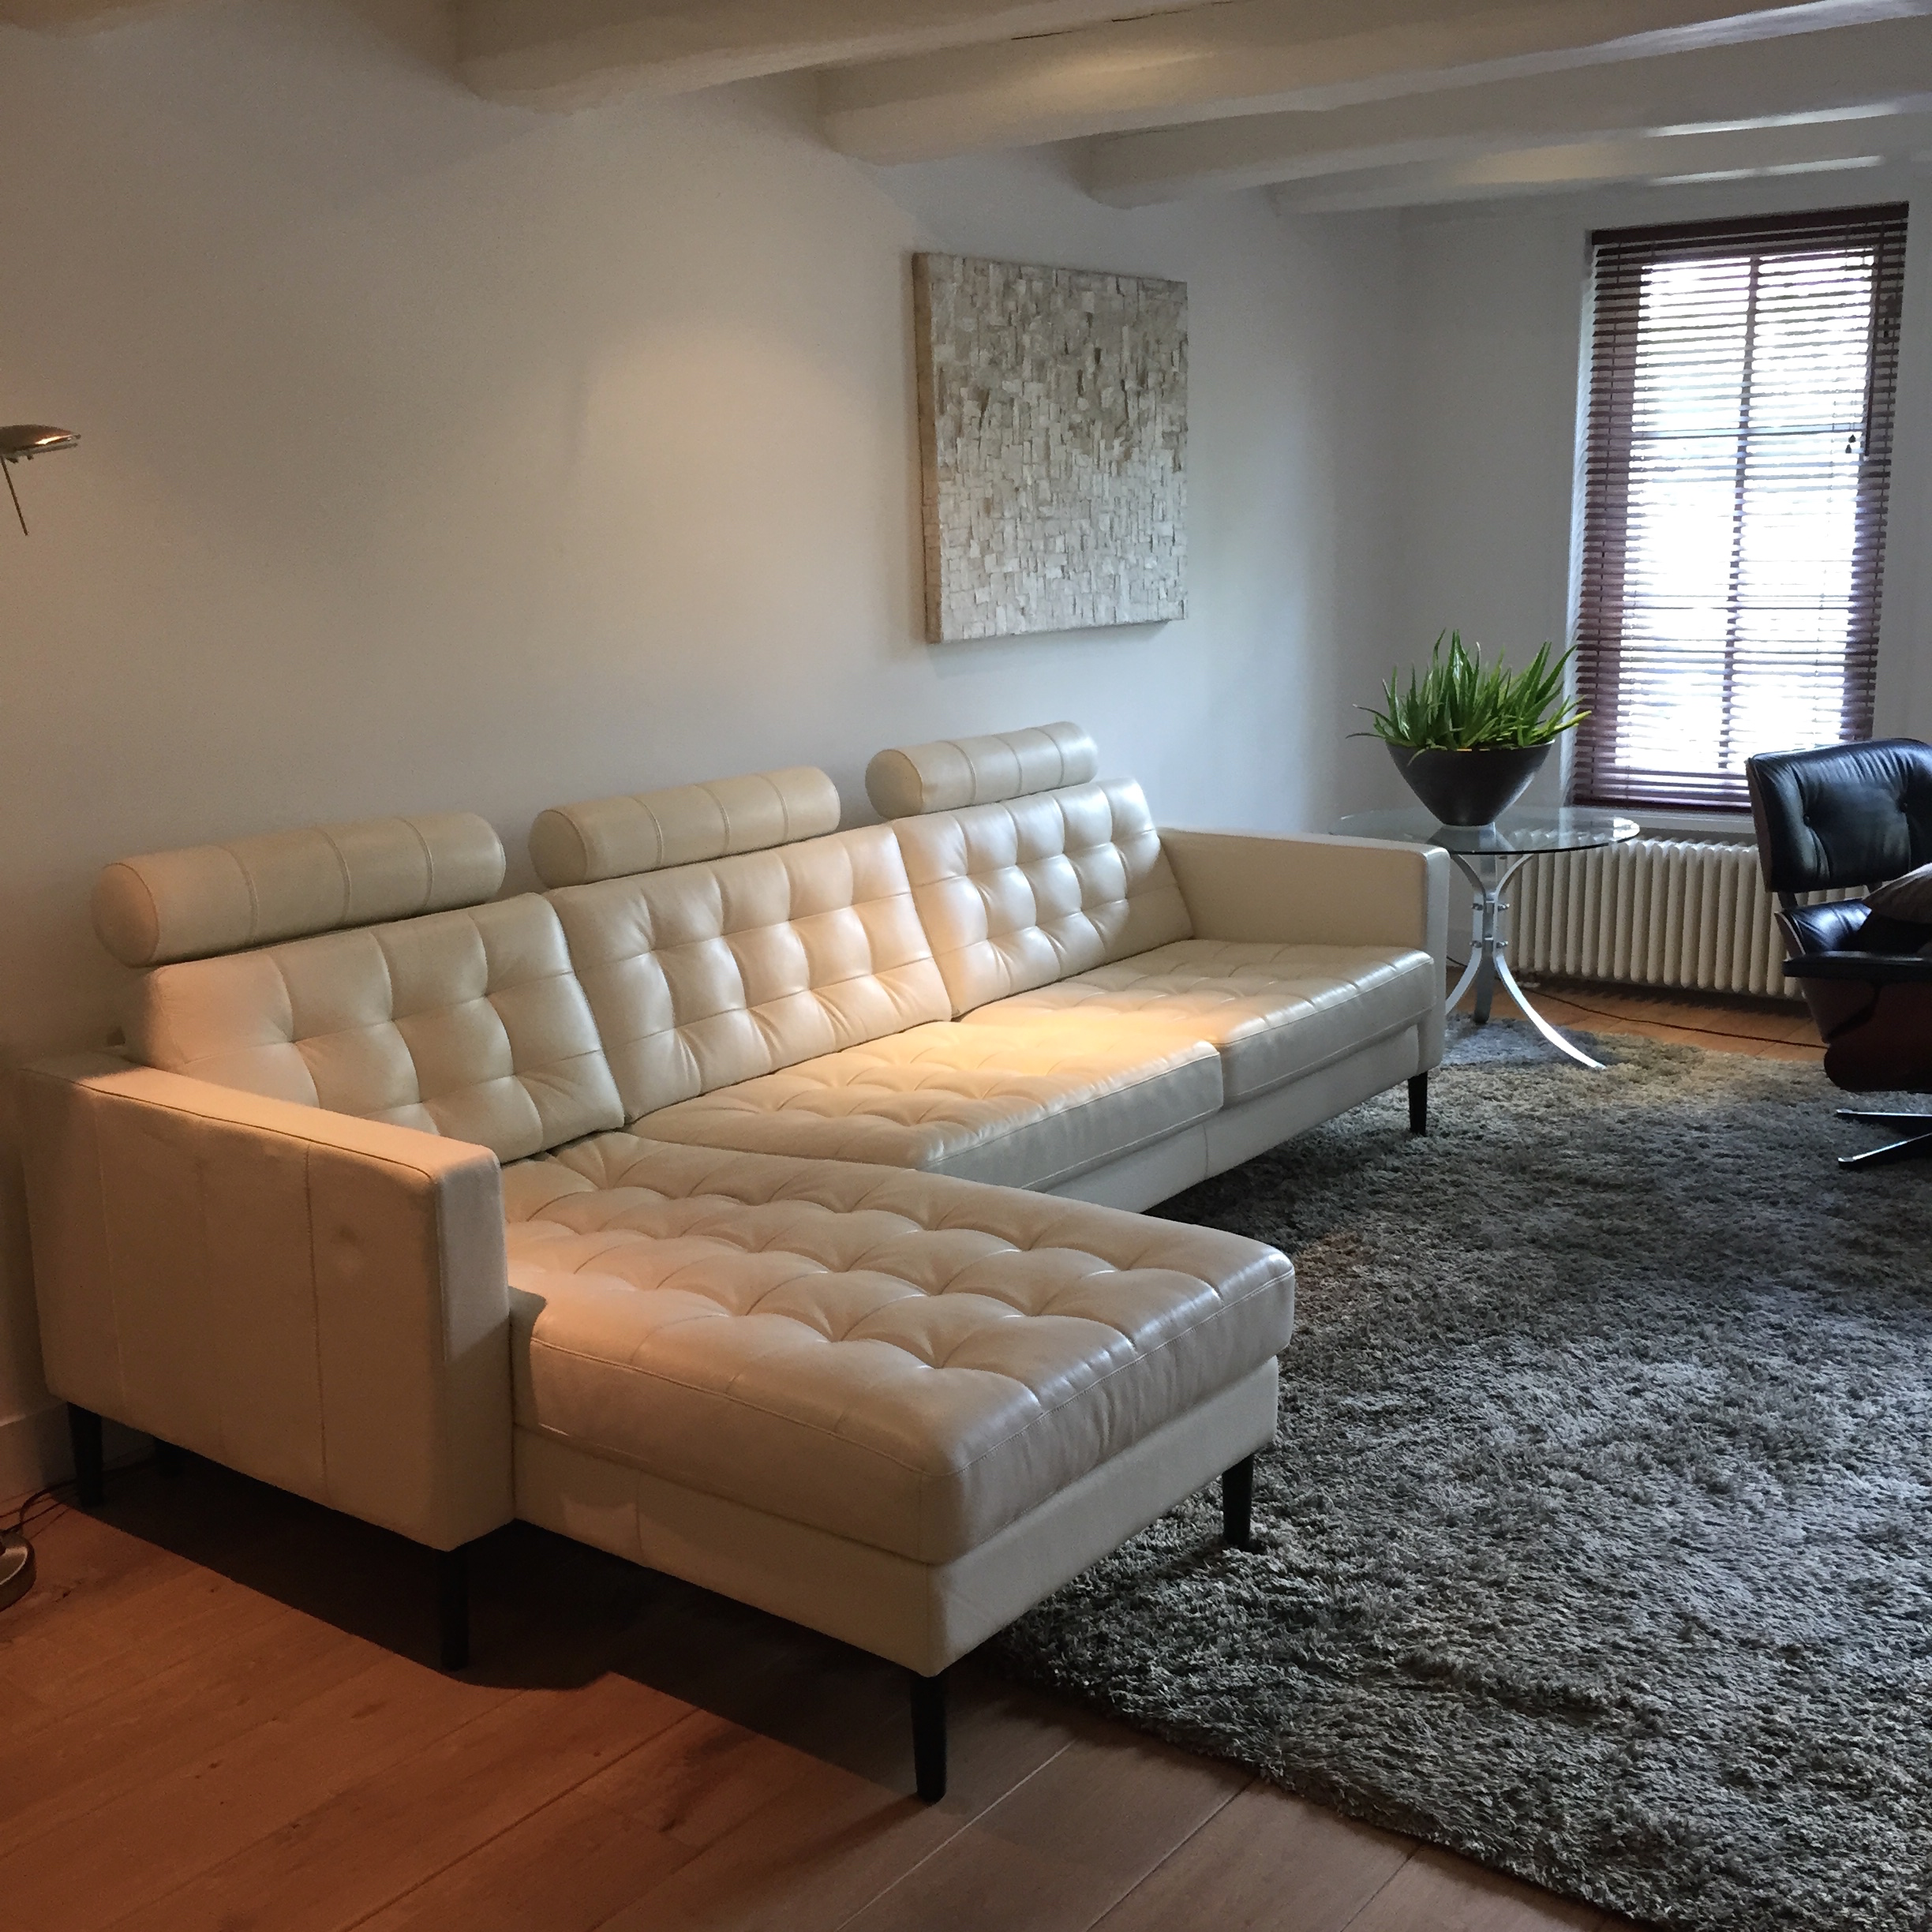 Ikea White Leather Couch Sofas: Stylish New Legs, (Ikea) Couch Make-over With Pretty Pegs